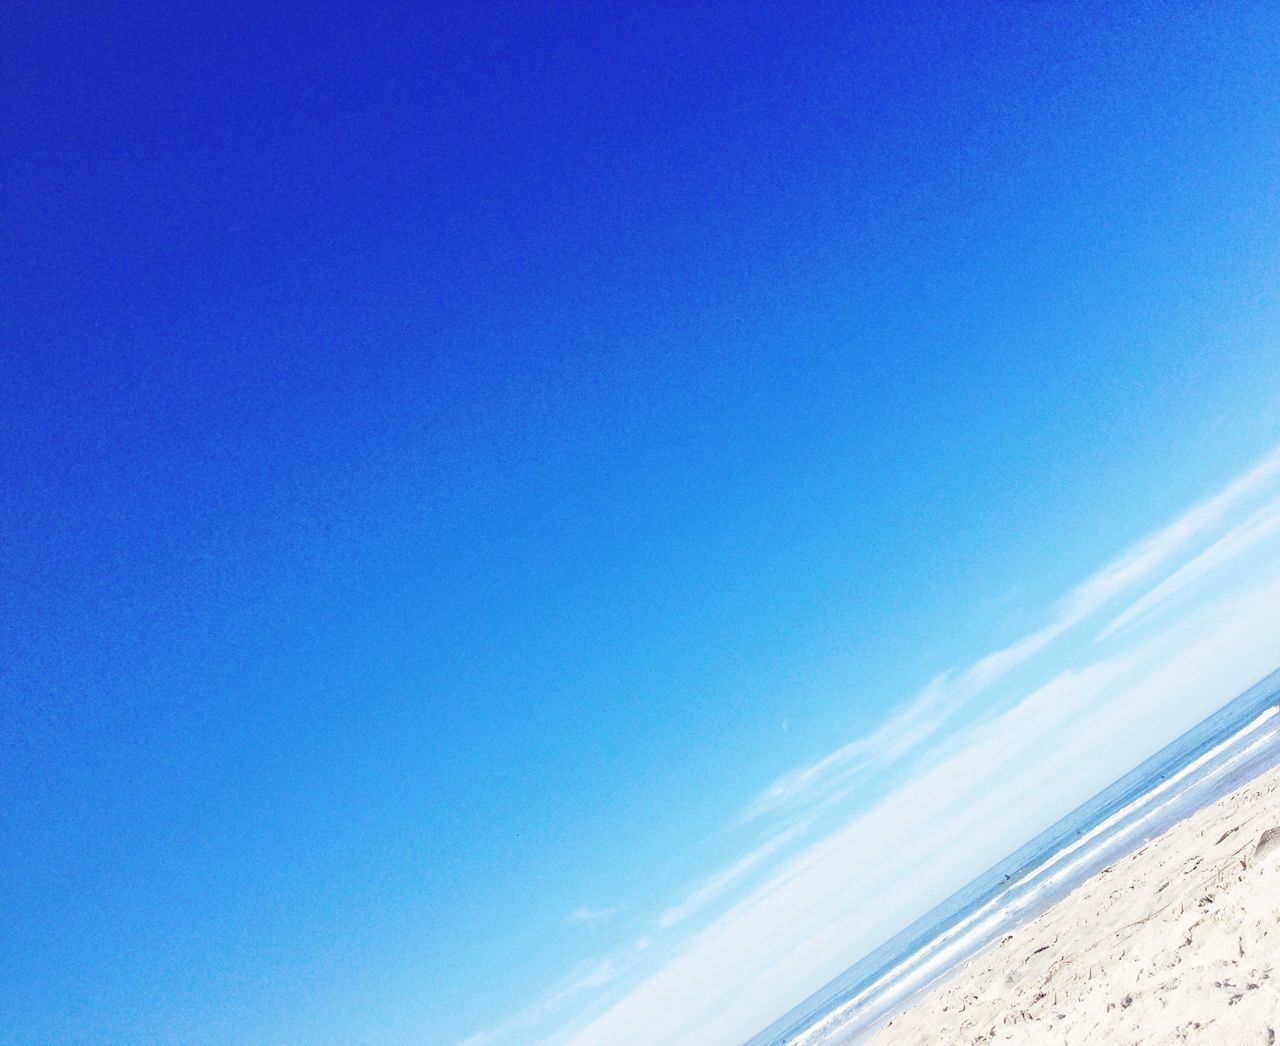 blue, nature, beauty in nature, copy space, scenics, no people, tranquility, tranquil scene, day, sea, outdoors, beach, sky, clear sky, horizon over water